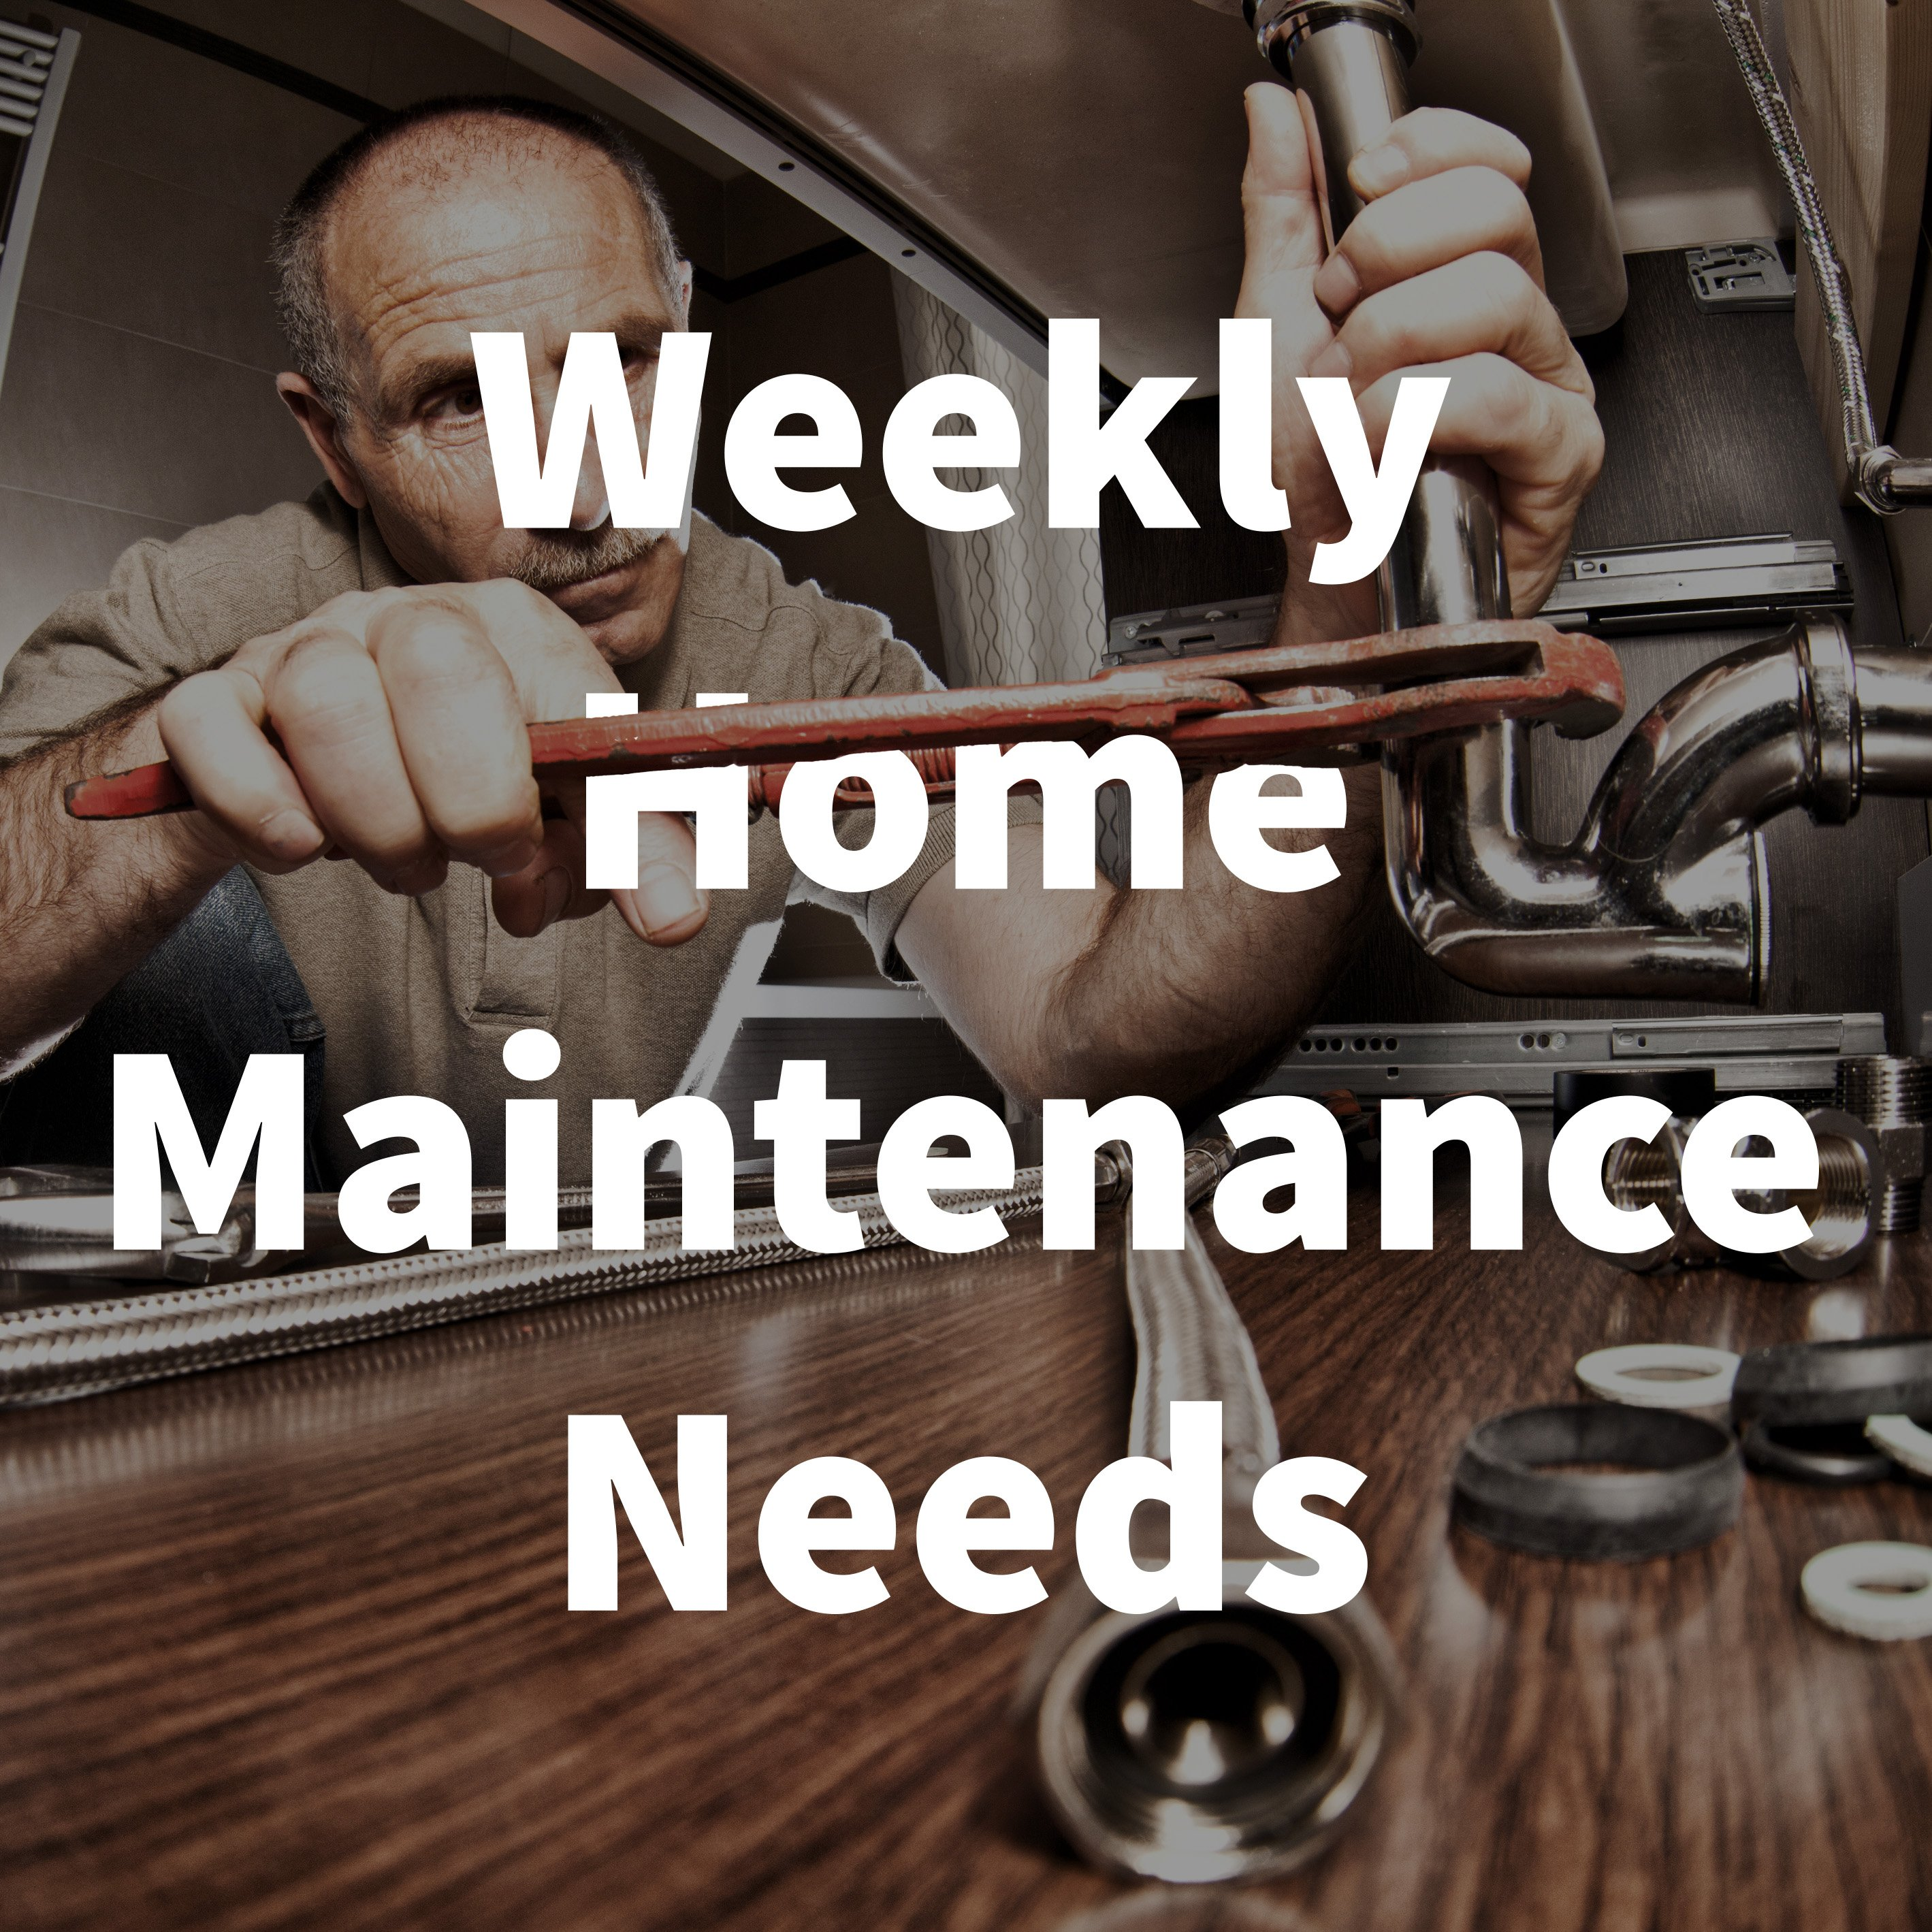 Weekly Home maintenance Blog.jpg